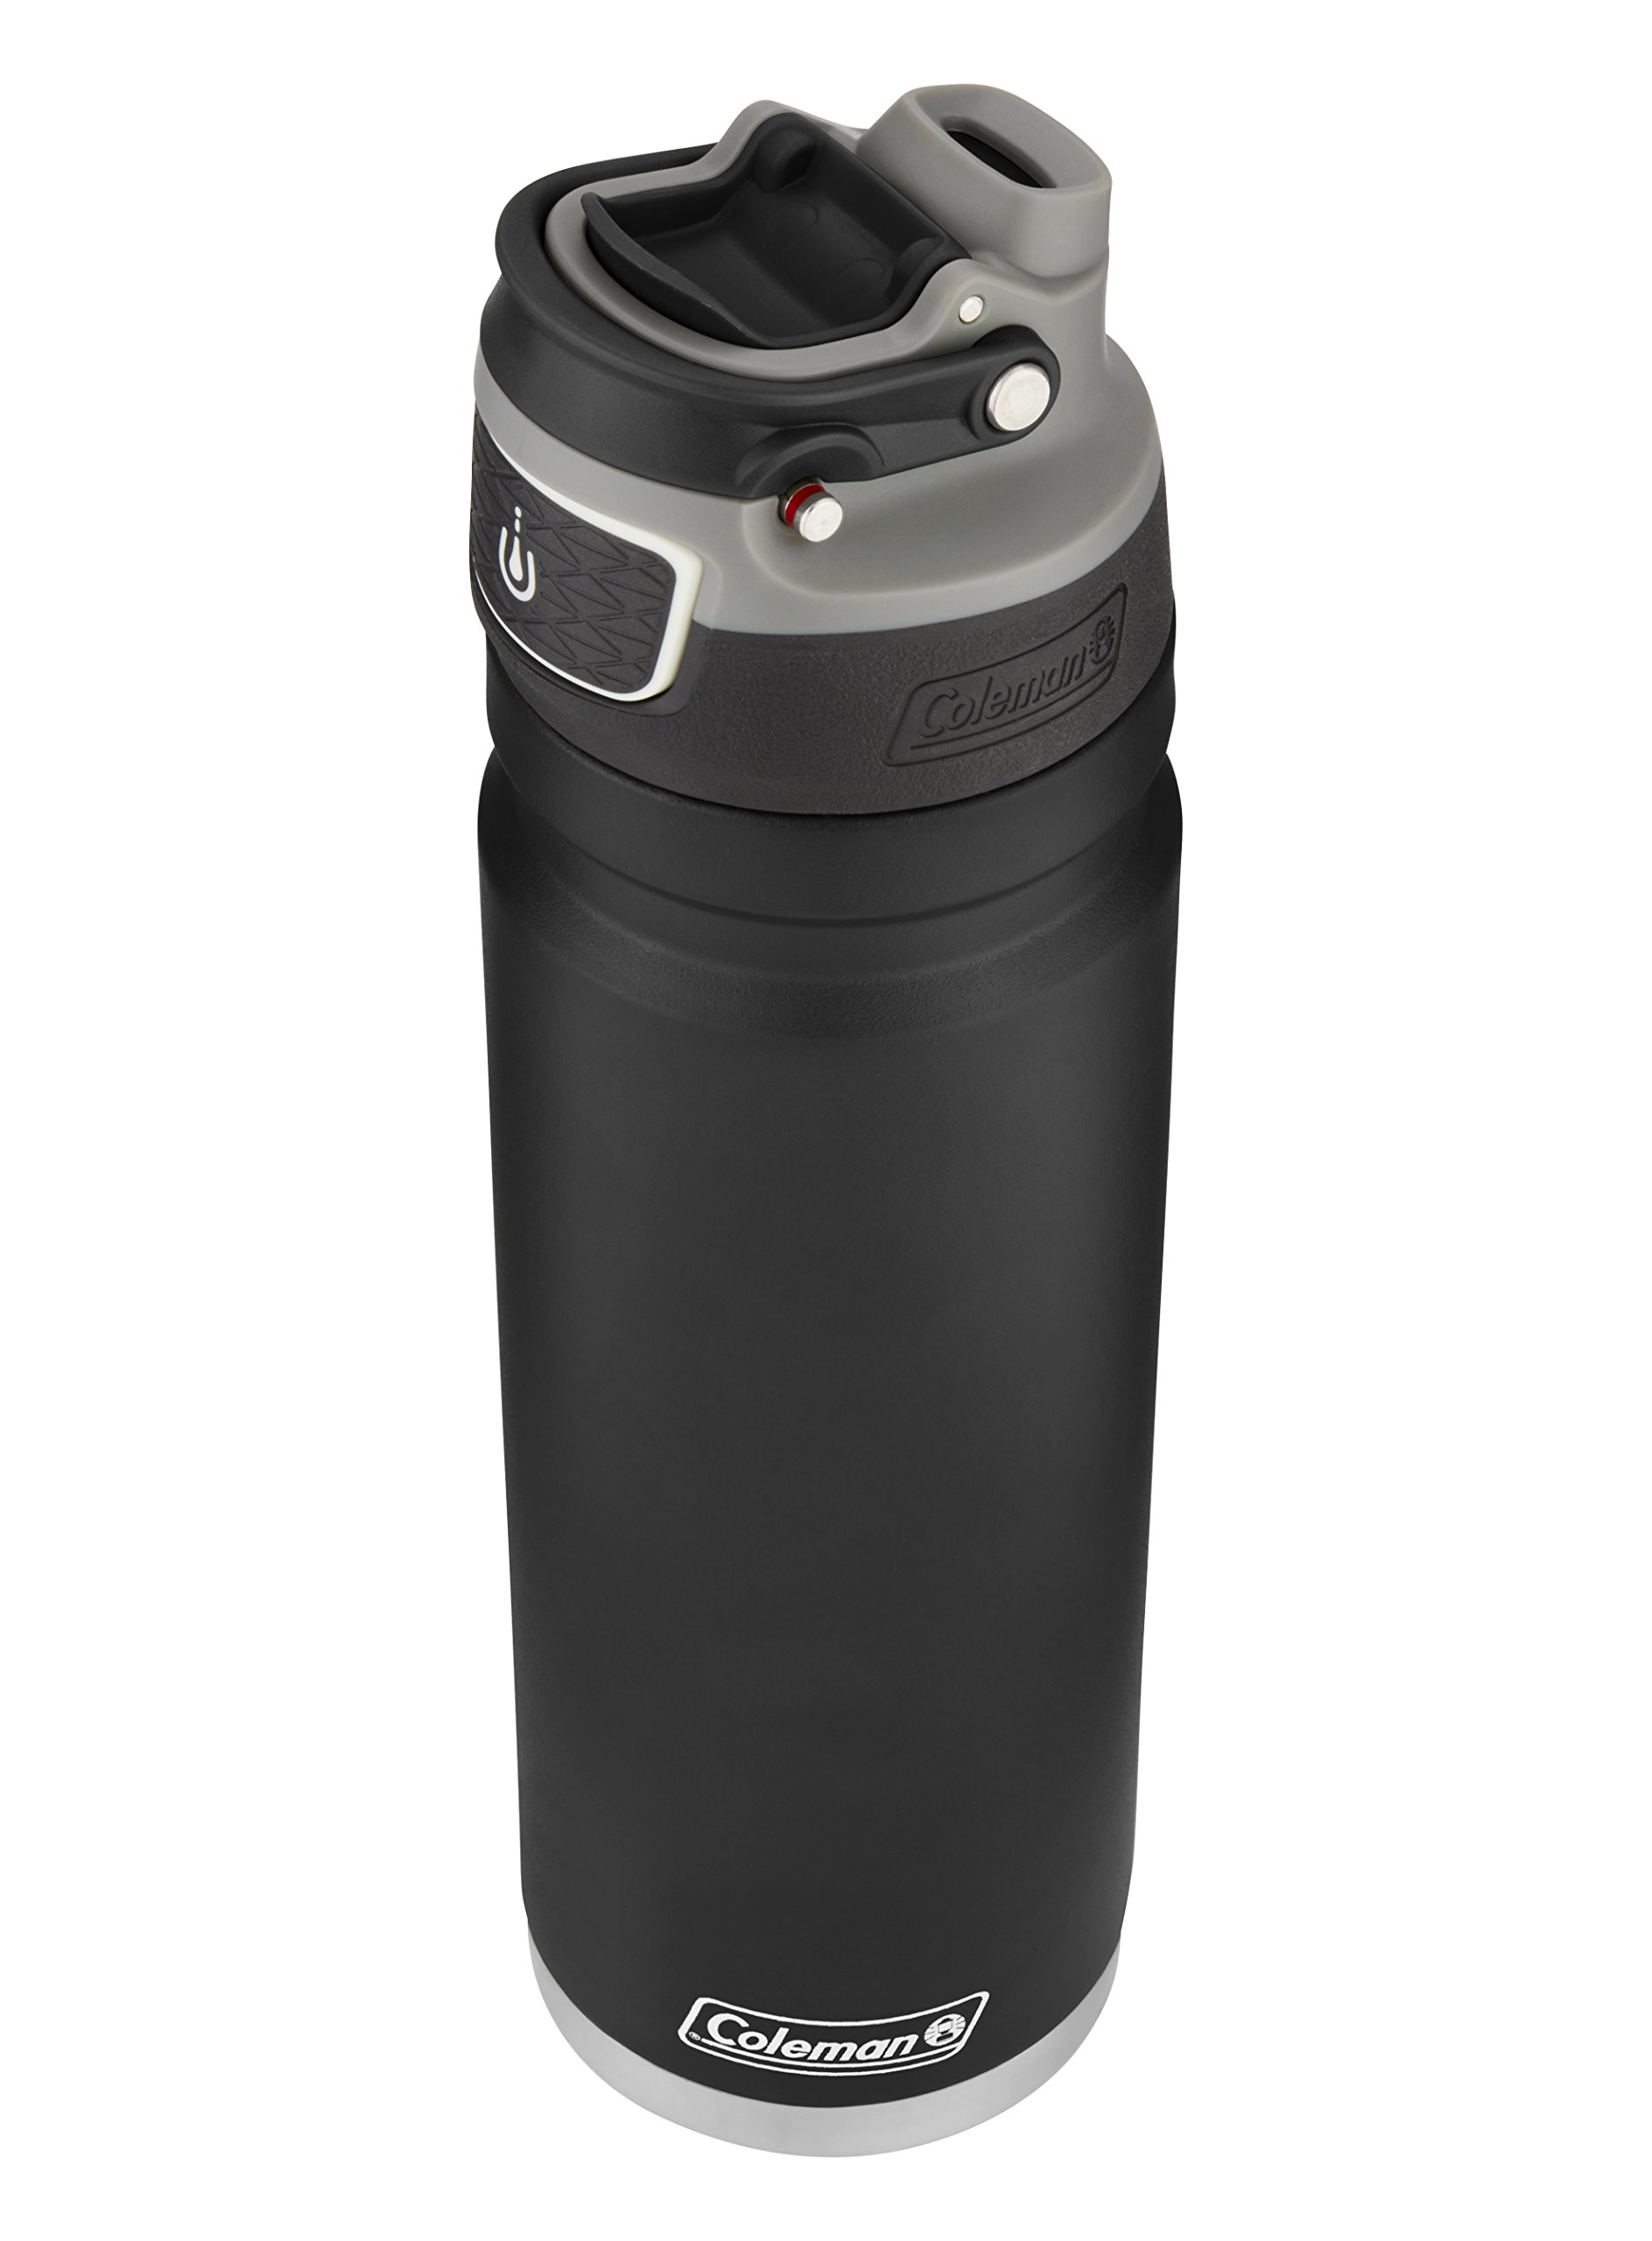 Coleman FreeFlow AUTOSEAL Insulated Stainless Steel Water Bottle, Black, 24 oz.